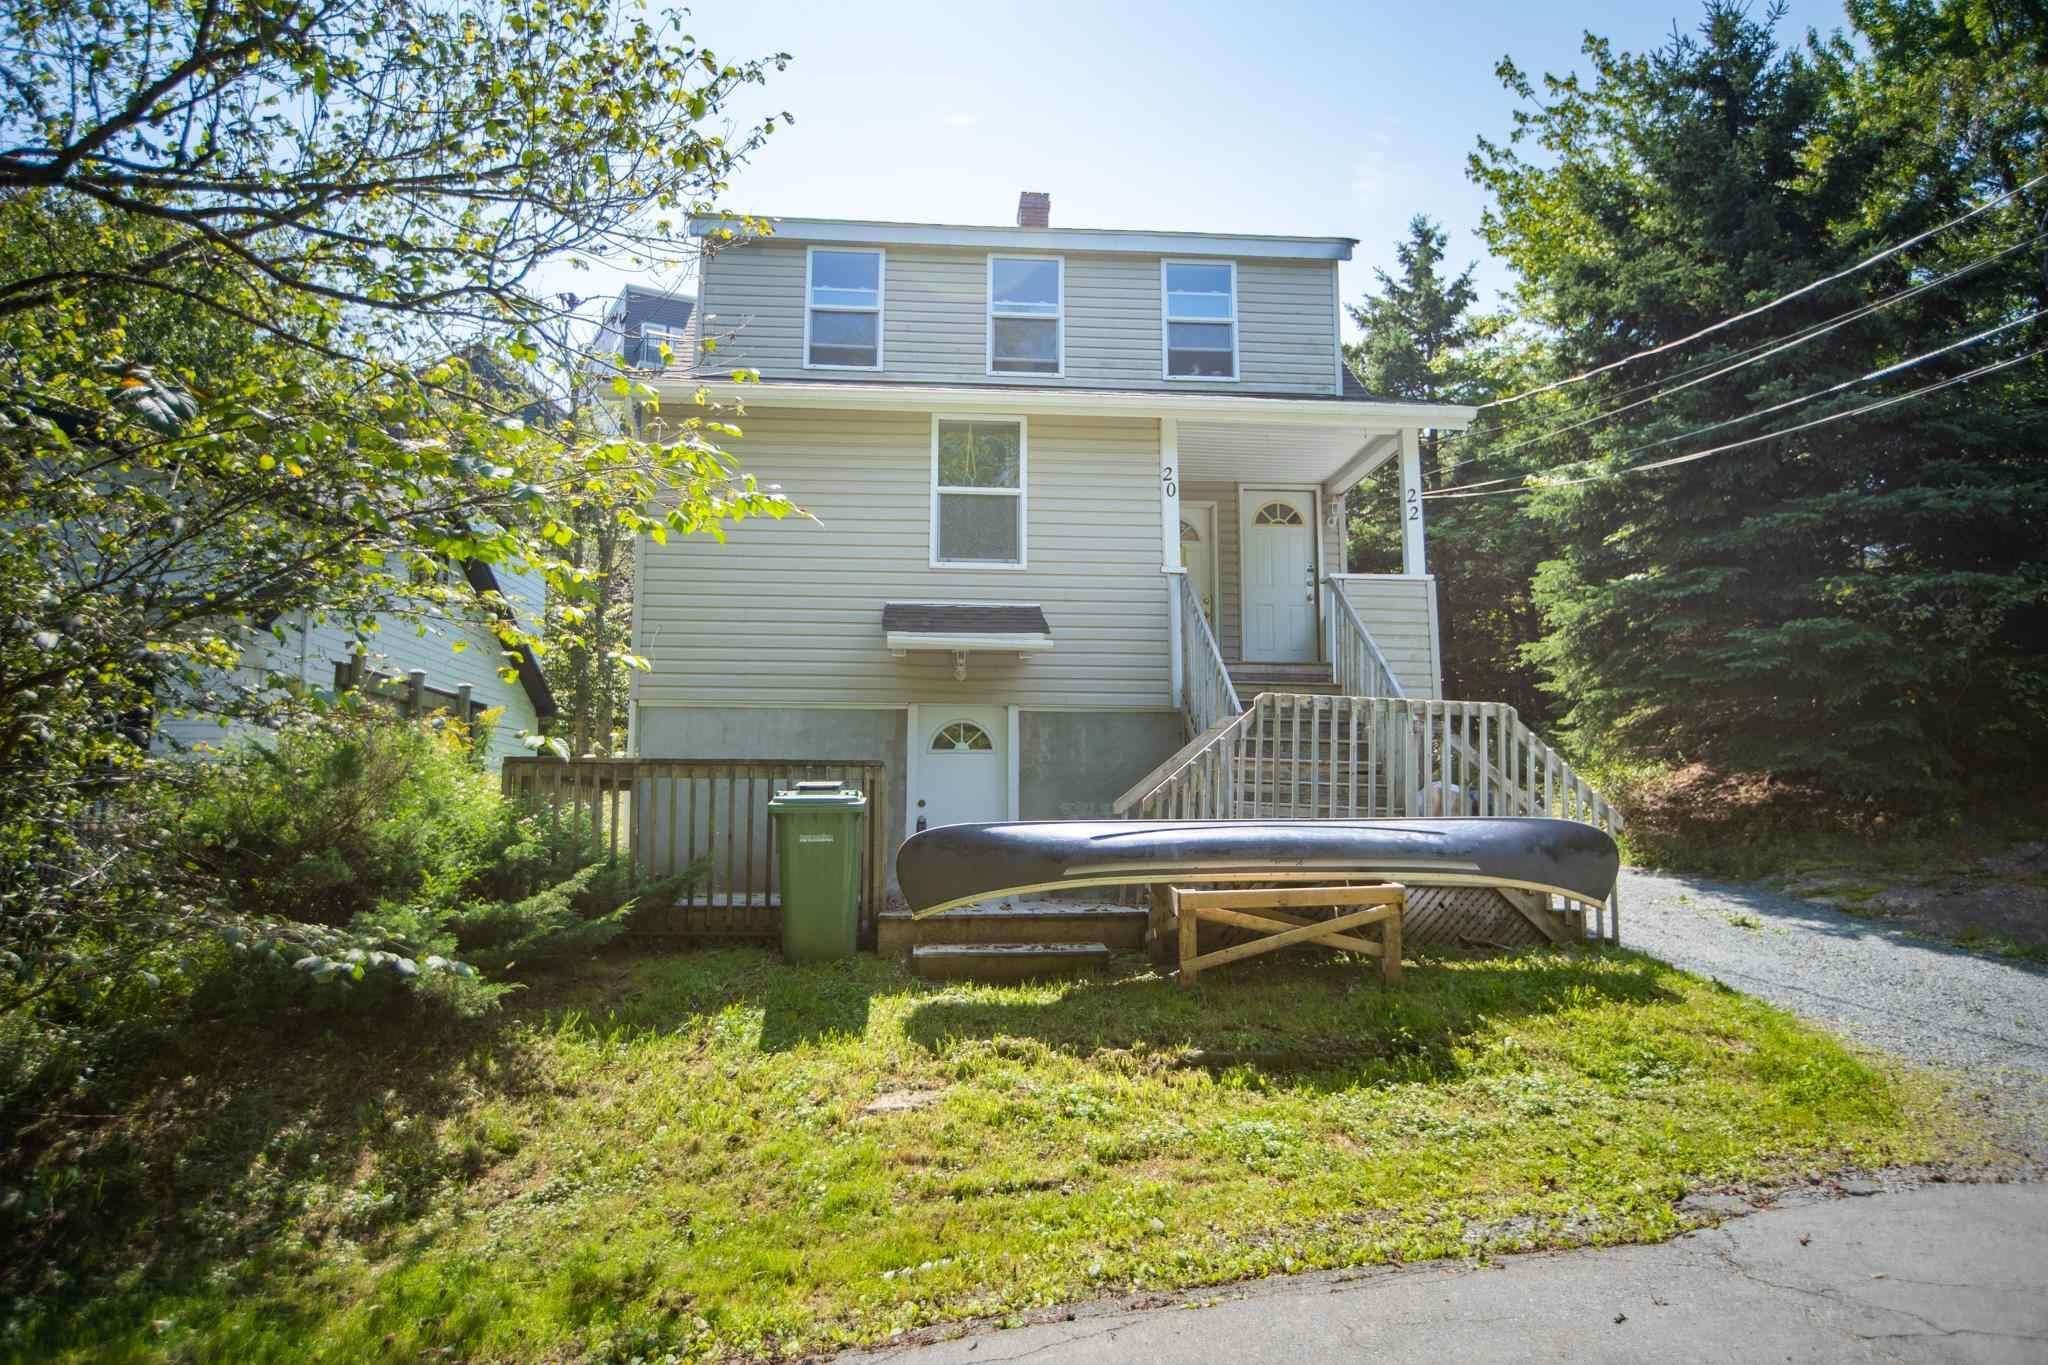 Main Photo: 20-22 Coronet Avenue in Halifax: 8-Armdale/Purcell`s Cove/Herring Cove Multi-Family for sale (Halifax-Dartmouth)  : MLS®# 202123310